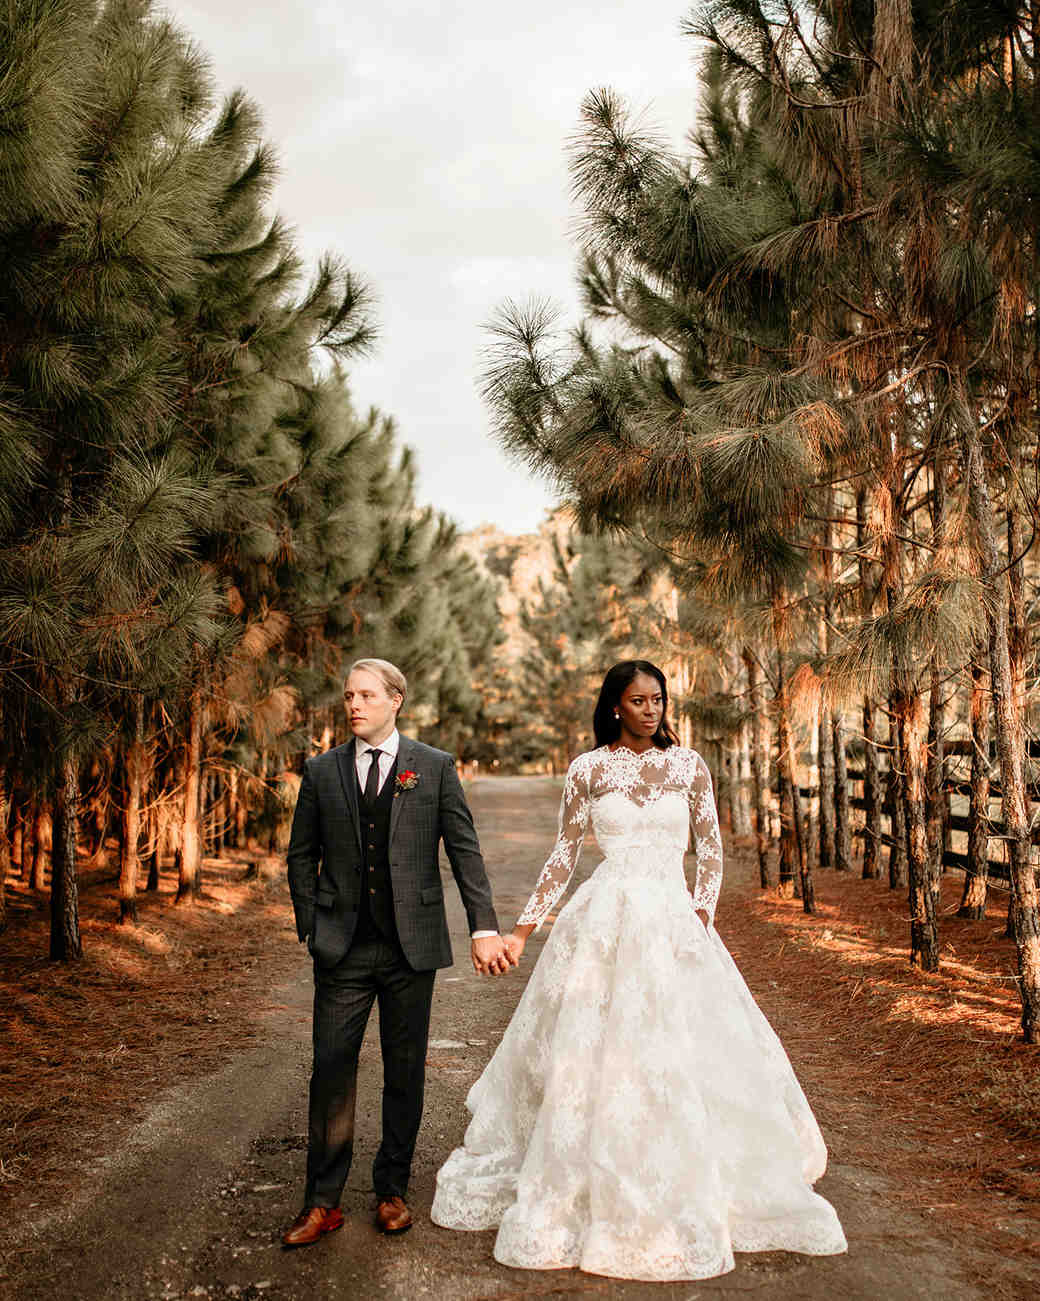 aerielle dyan wedding couple on road with pine trees